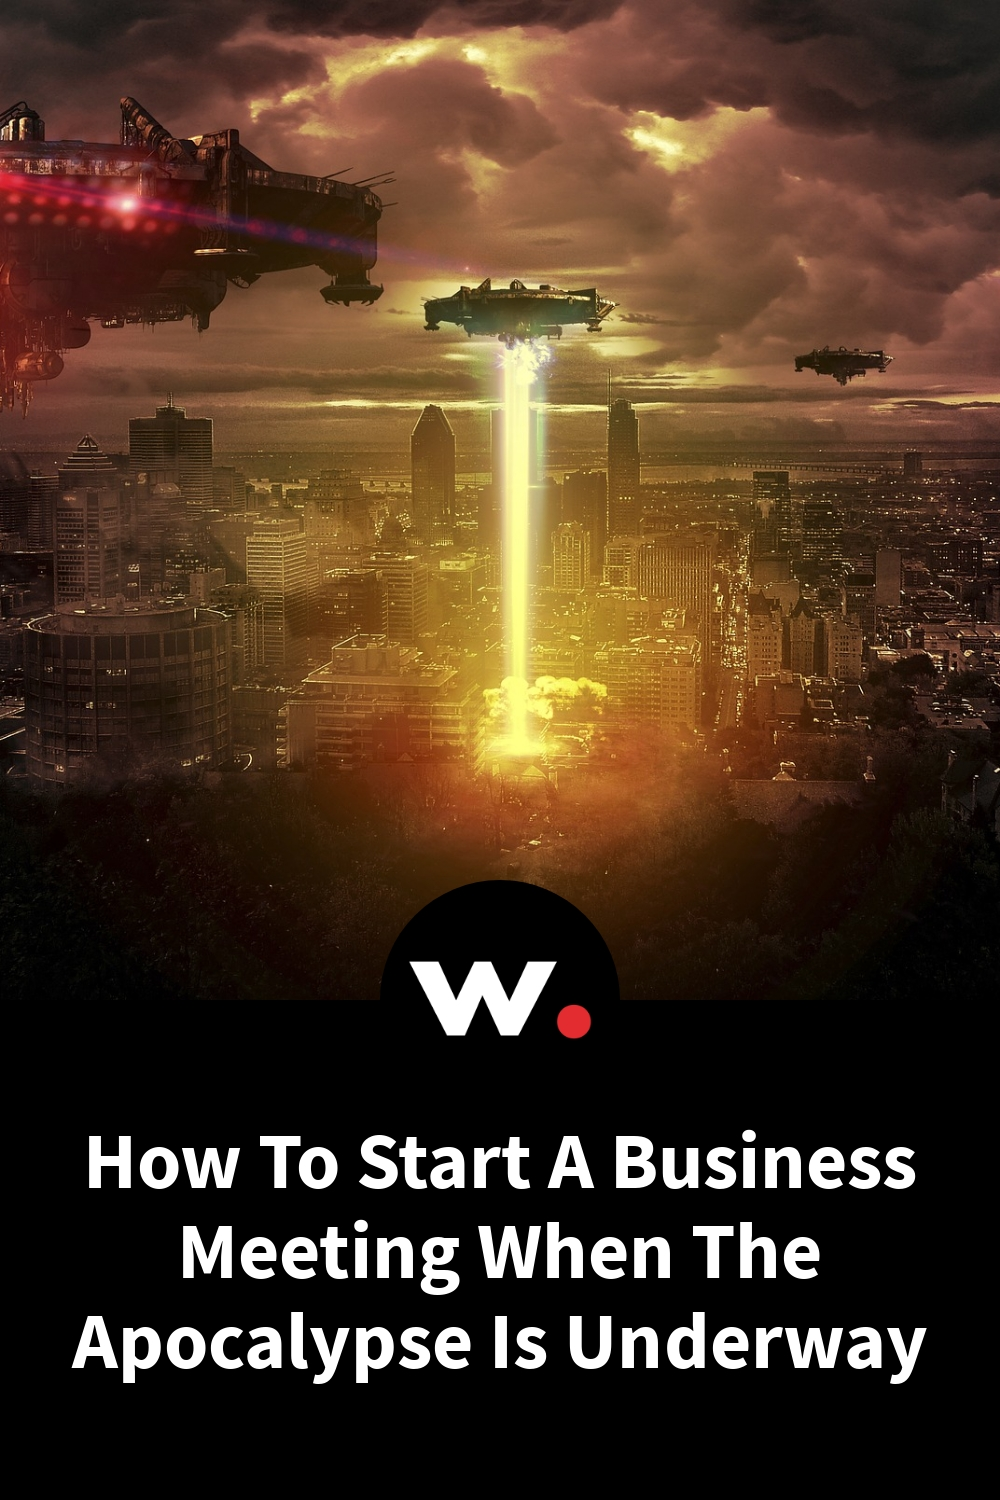 How To Start A Business Meeting When The Apocalypse Is Underway